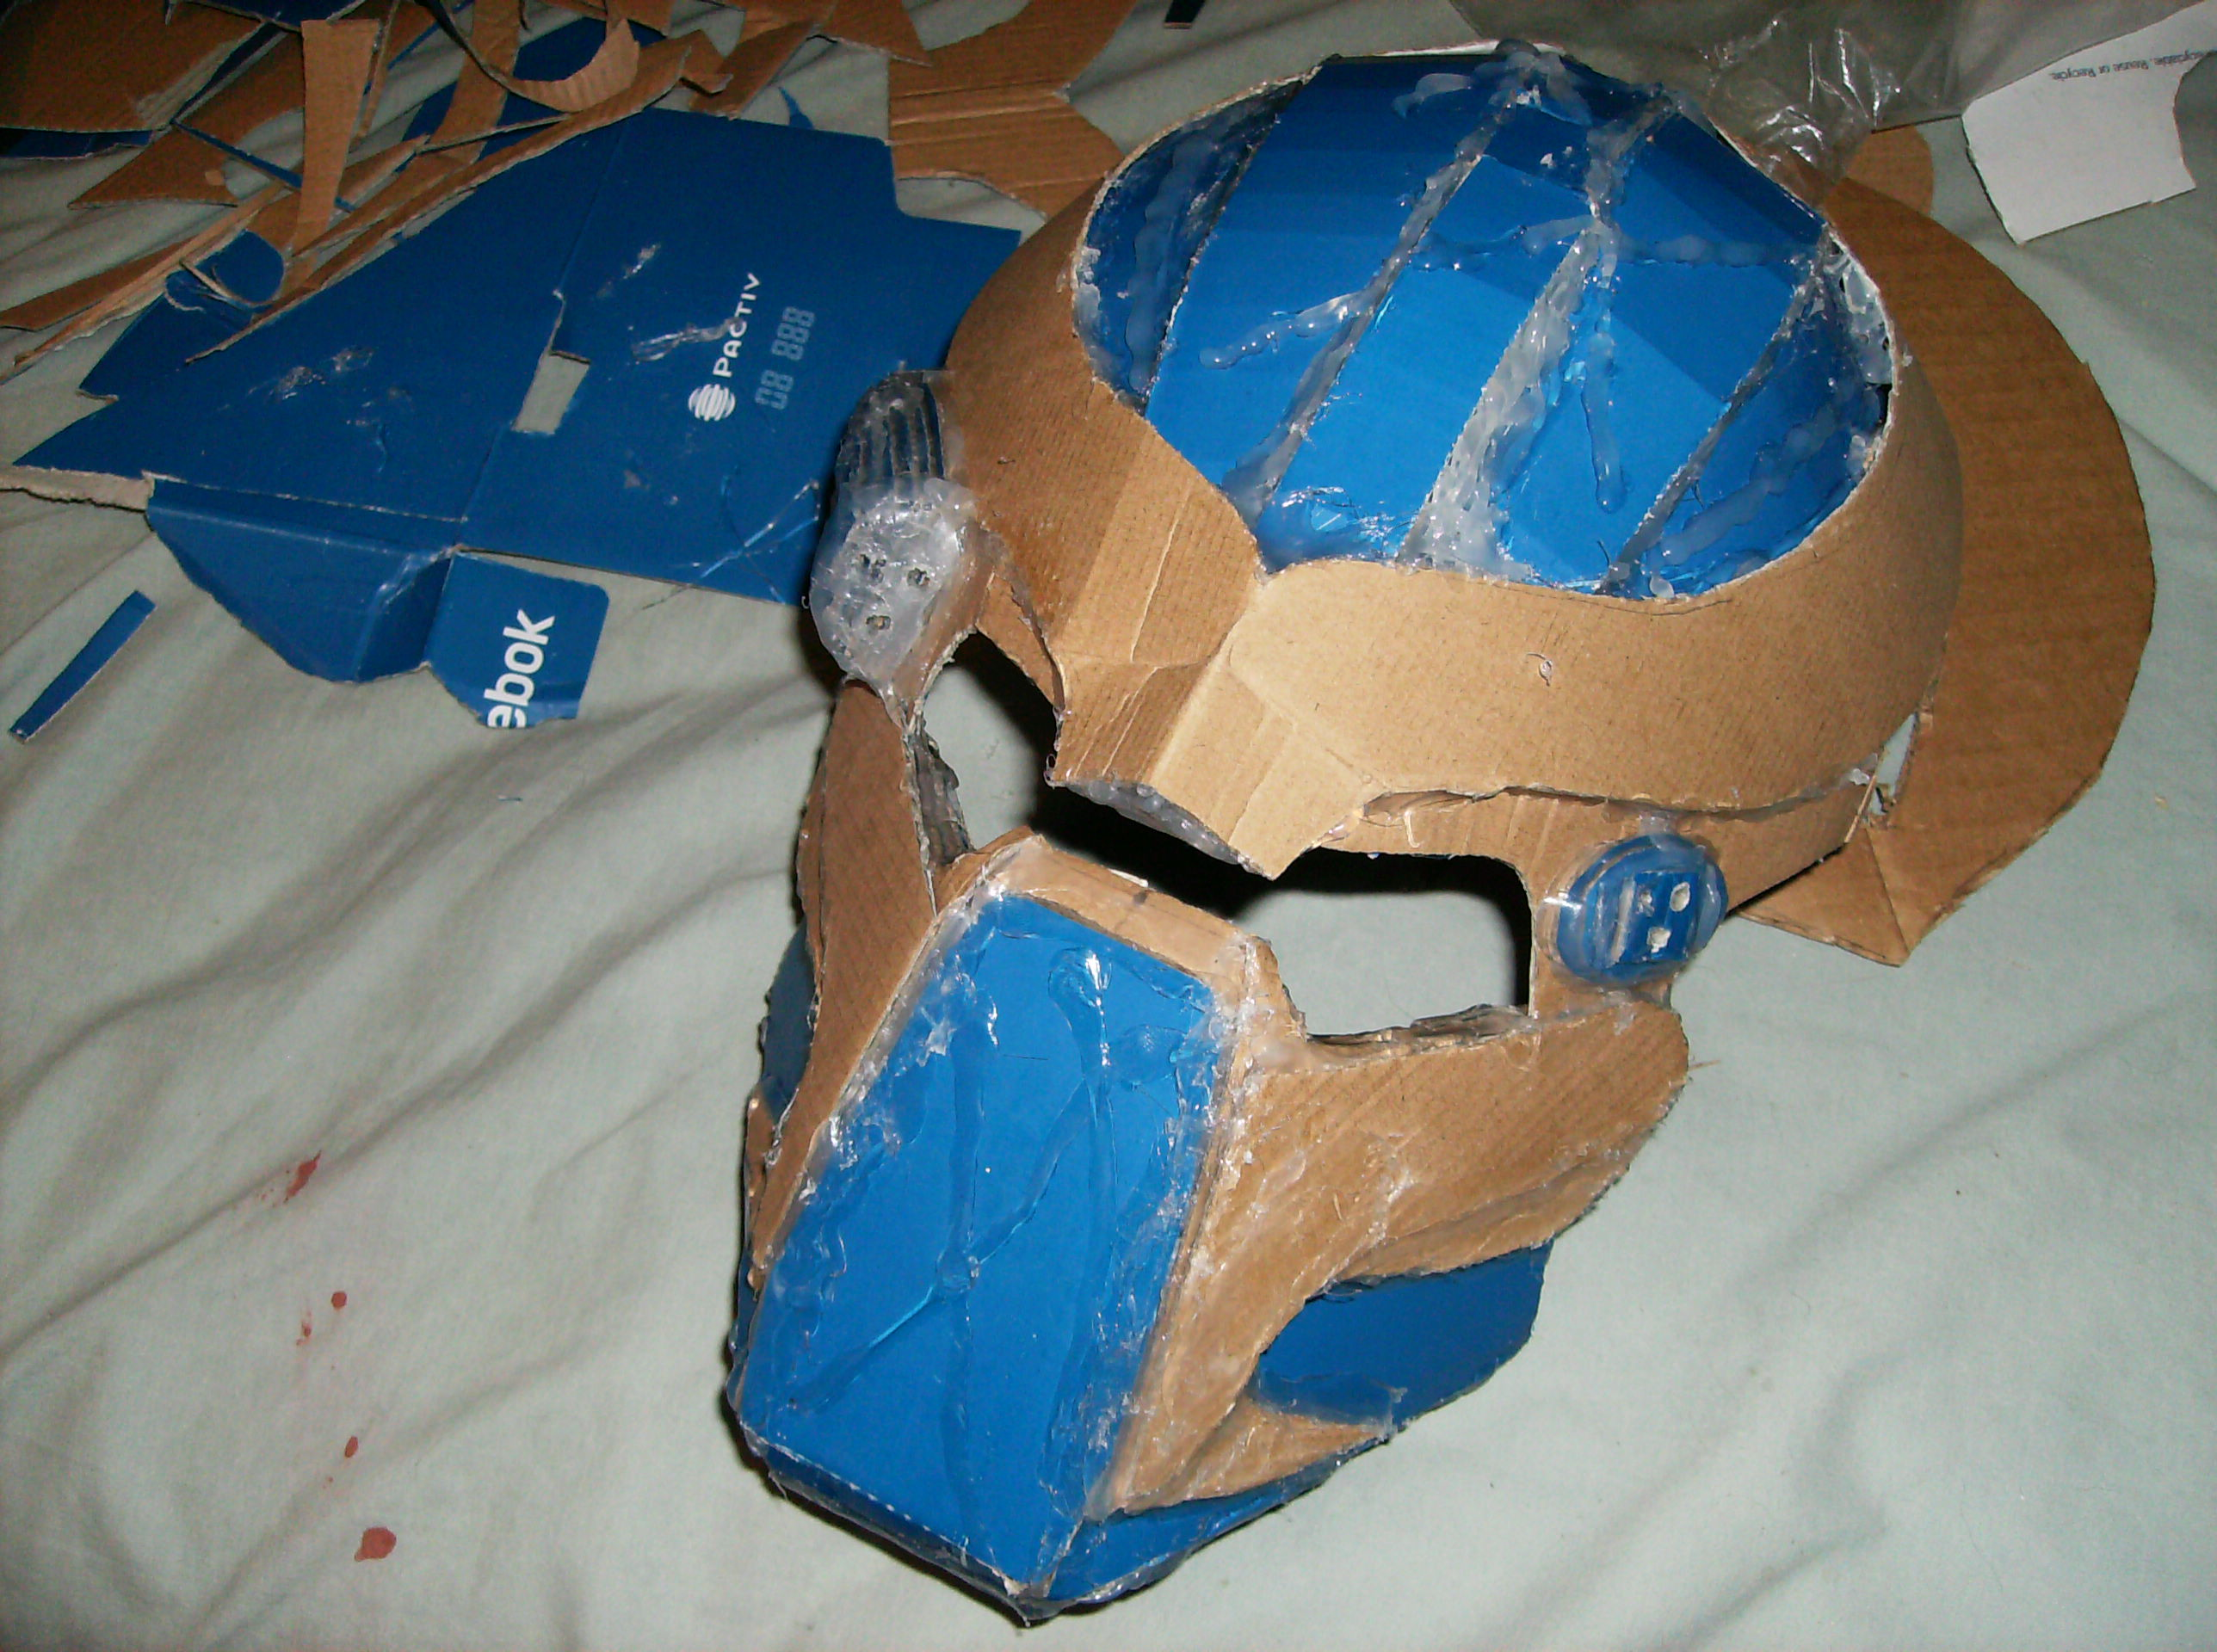 2576x1920 Made A Predator Helmet Out Of A Shoe Box. Will